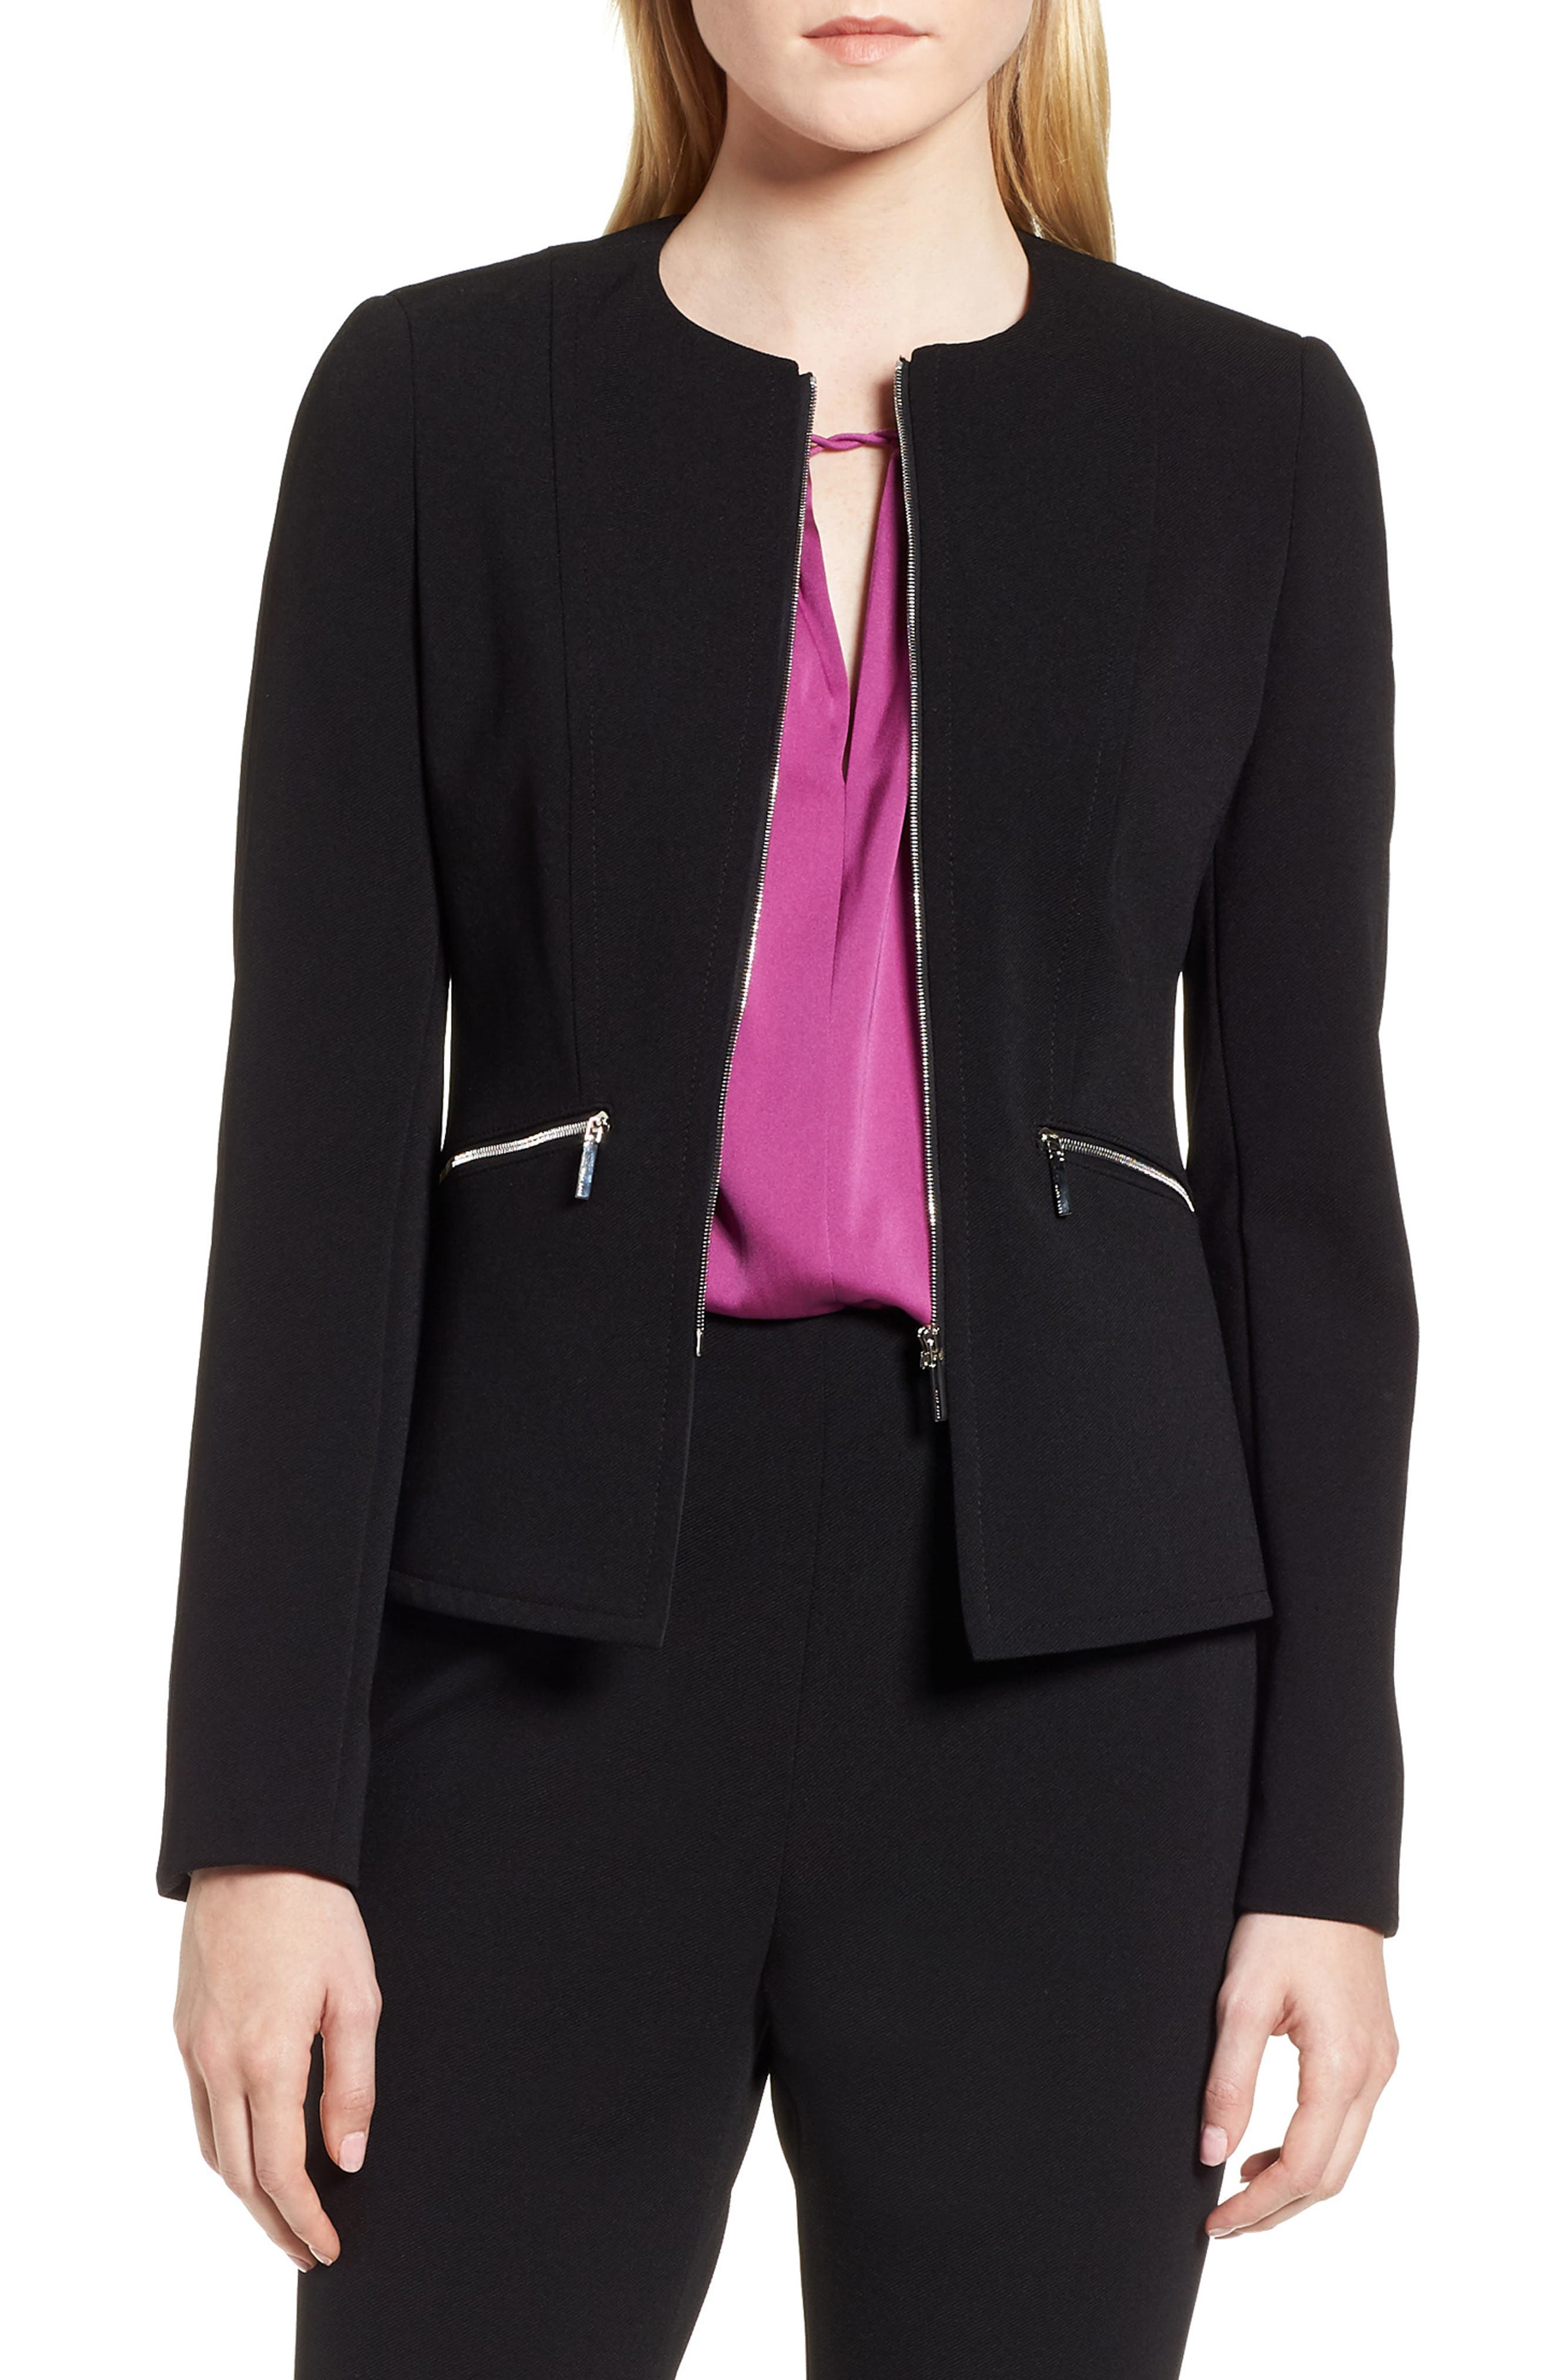 Jazulara Twill Jersey Suit Jacket,                         Main,                         color, Black